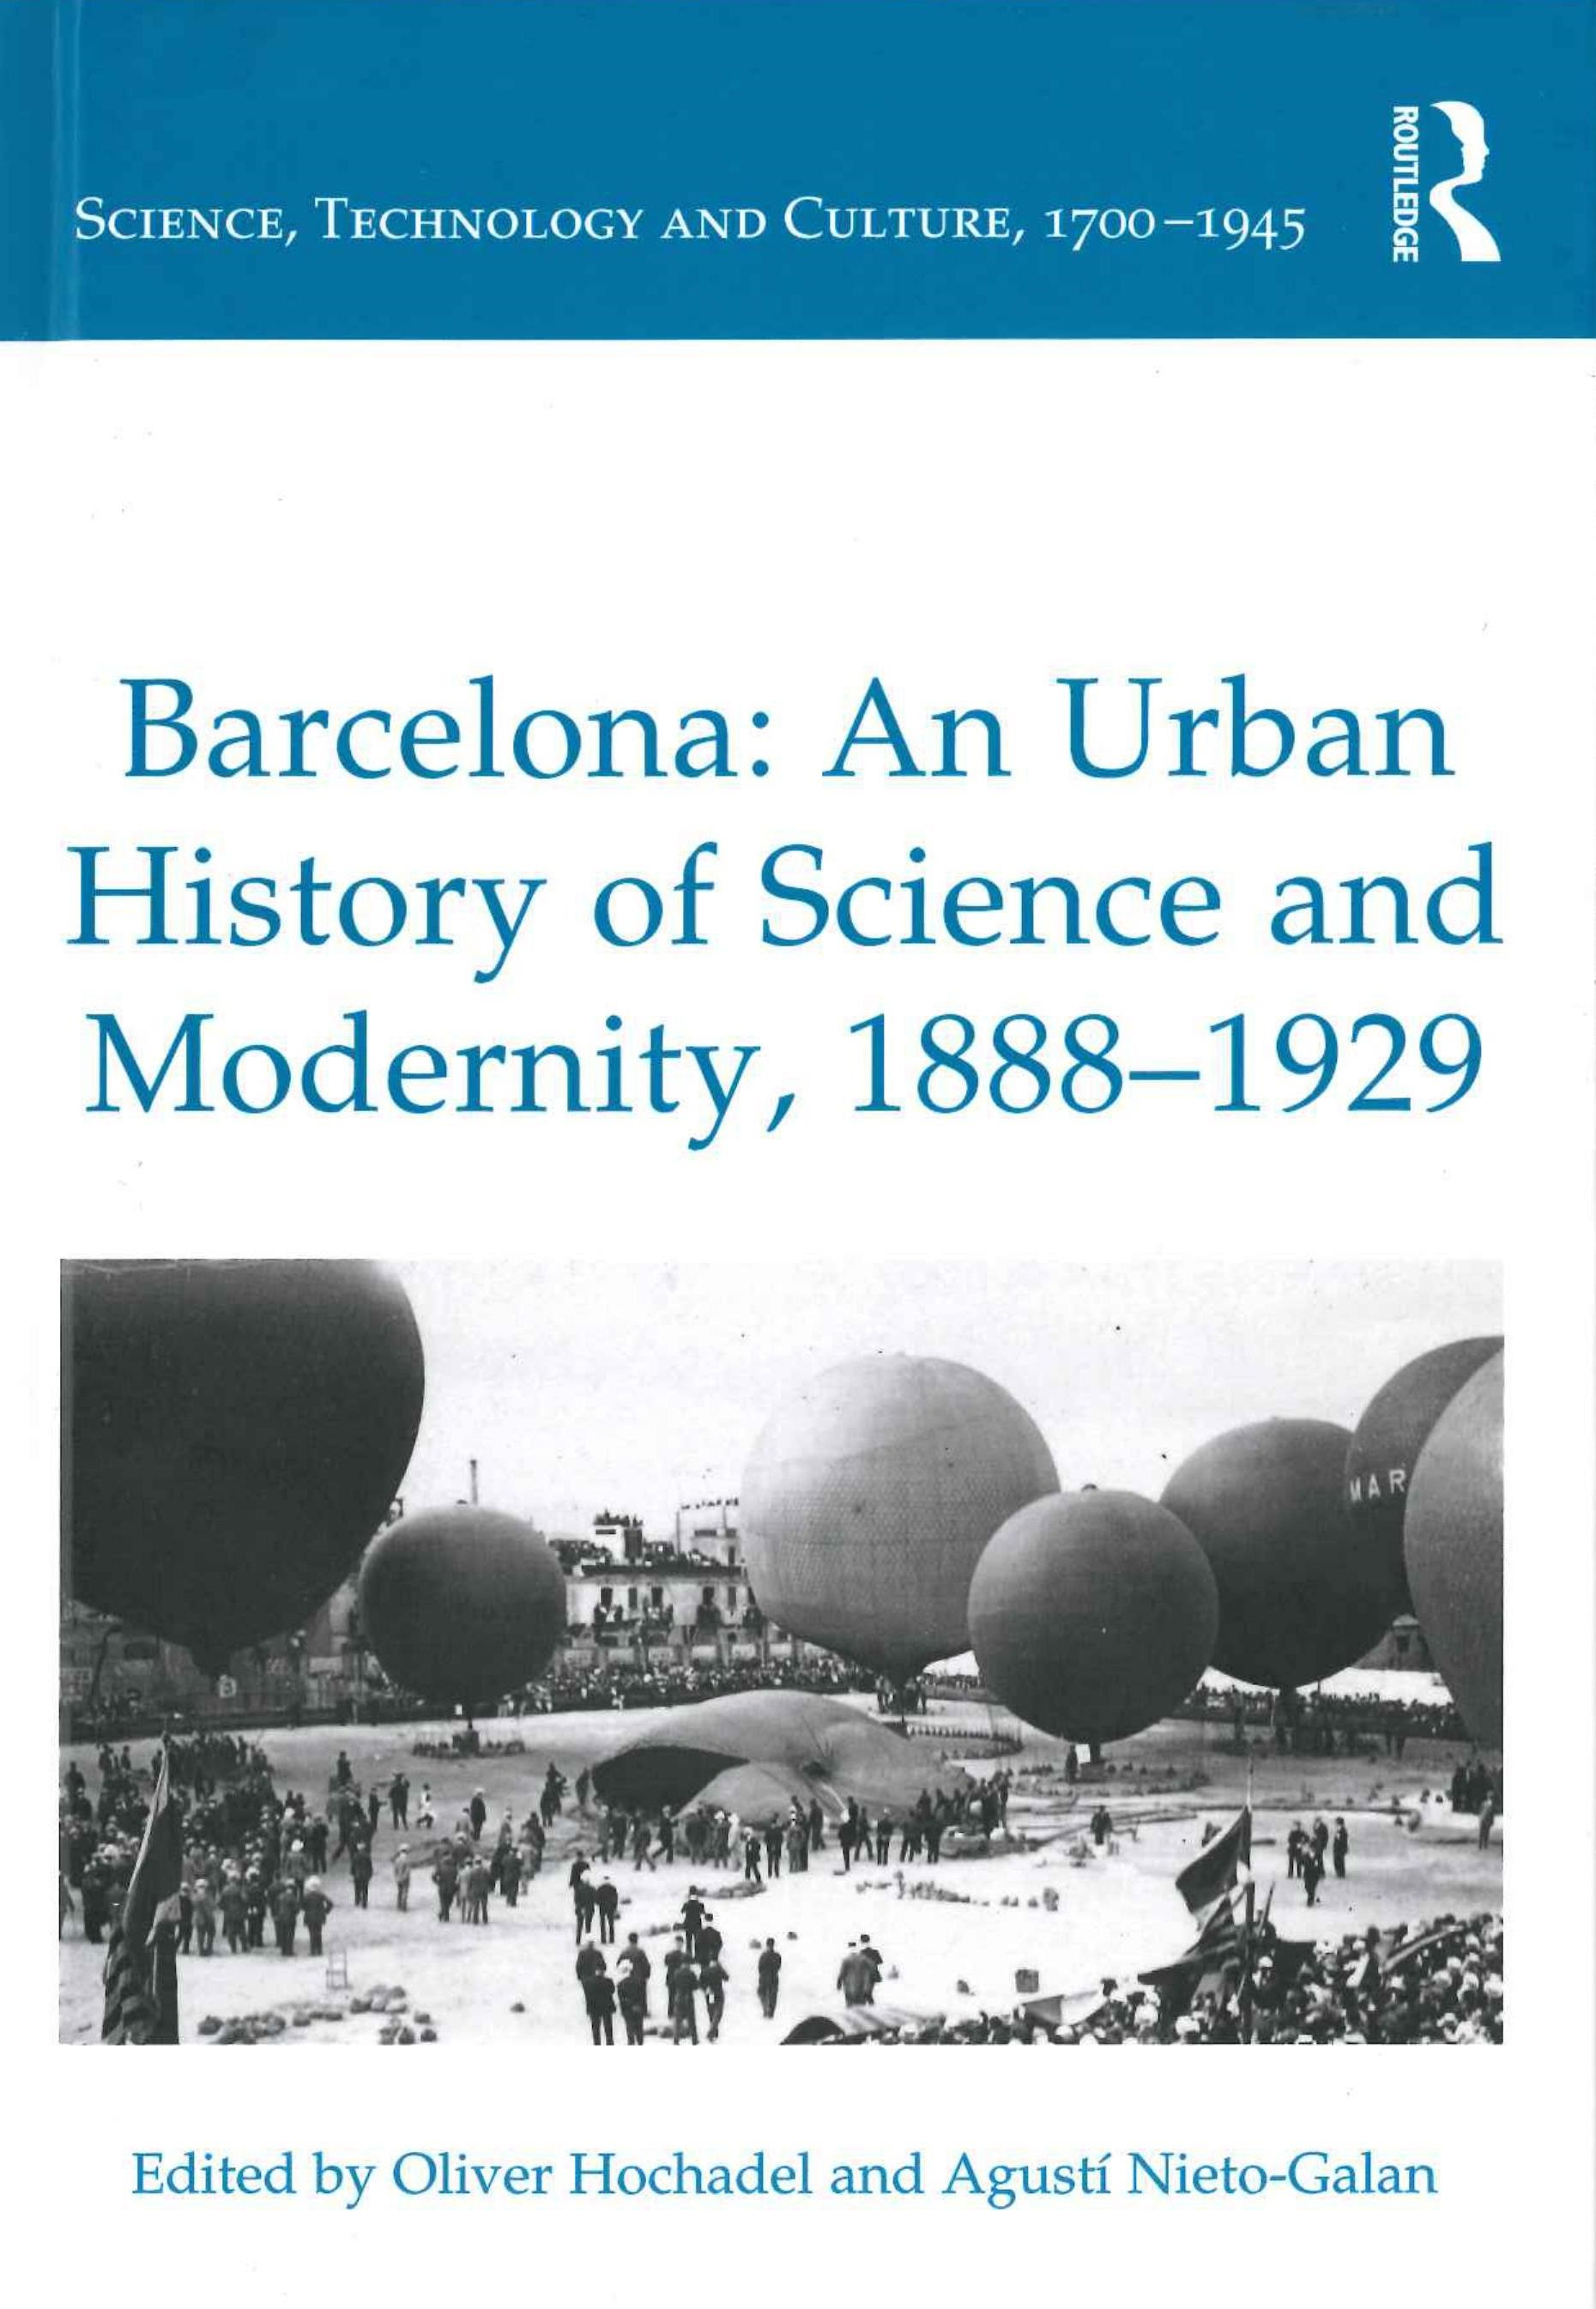 publicacio-de-barcelona-an-urban-history-of-science-and-modernity-1888-1929